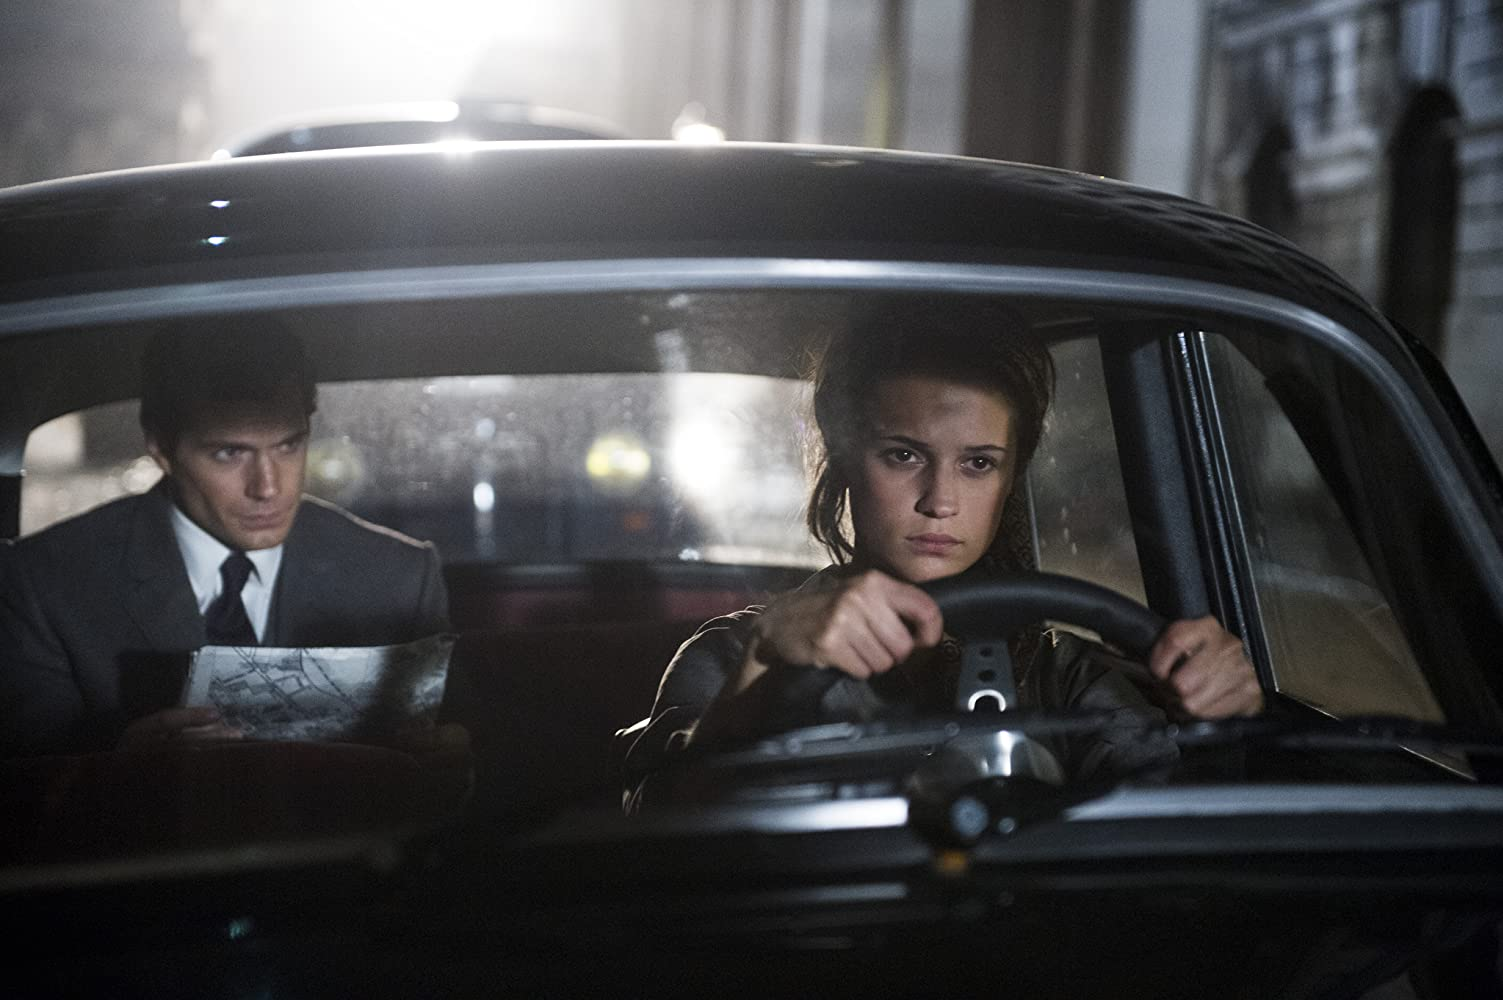 Henry Cavill and Alicia Vikander in The Man from U.N.C.L.E. (2015)